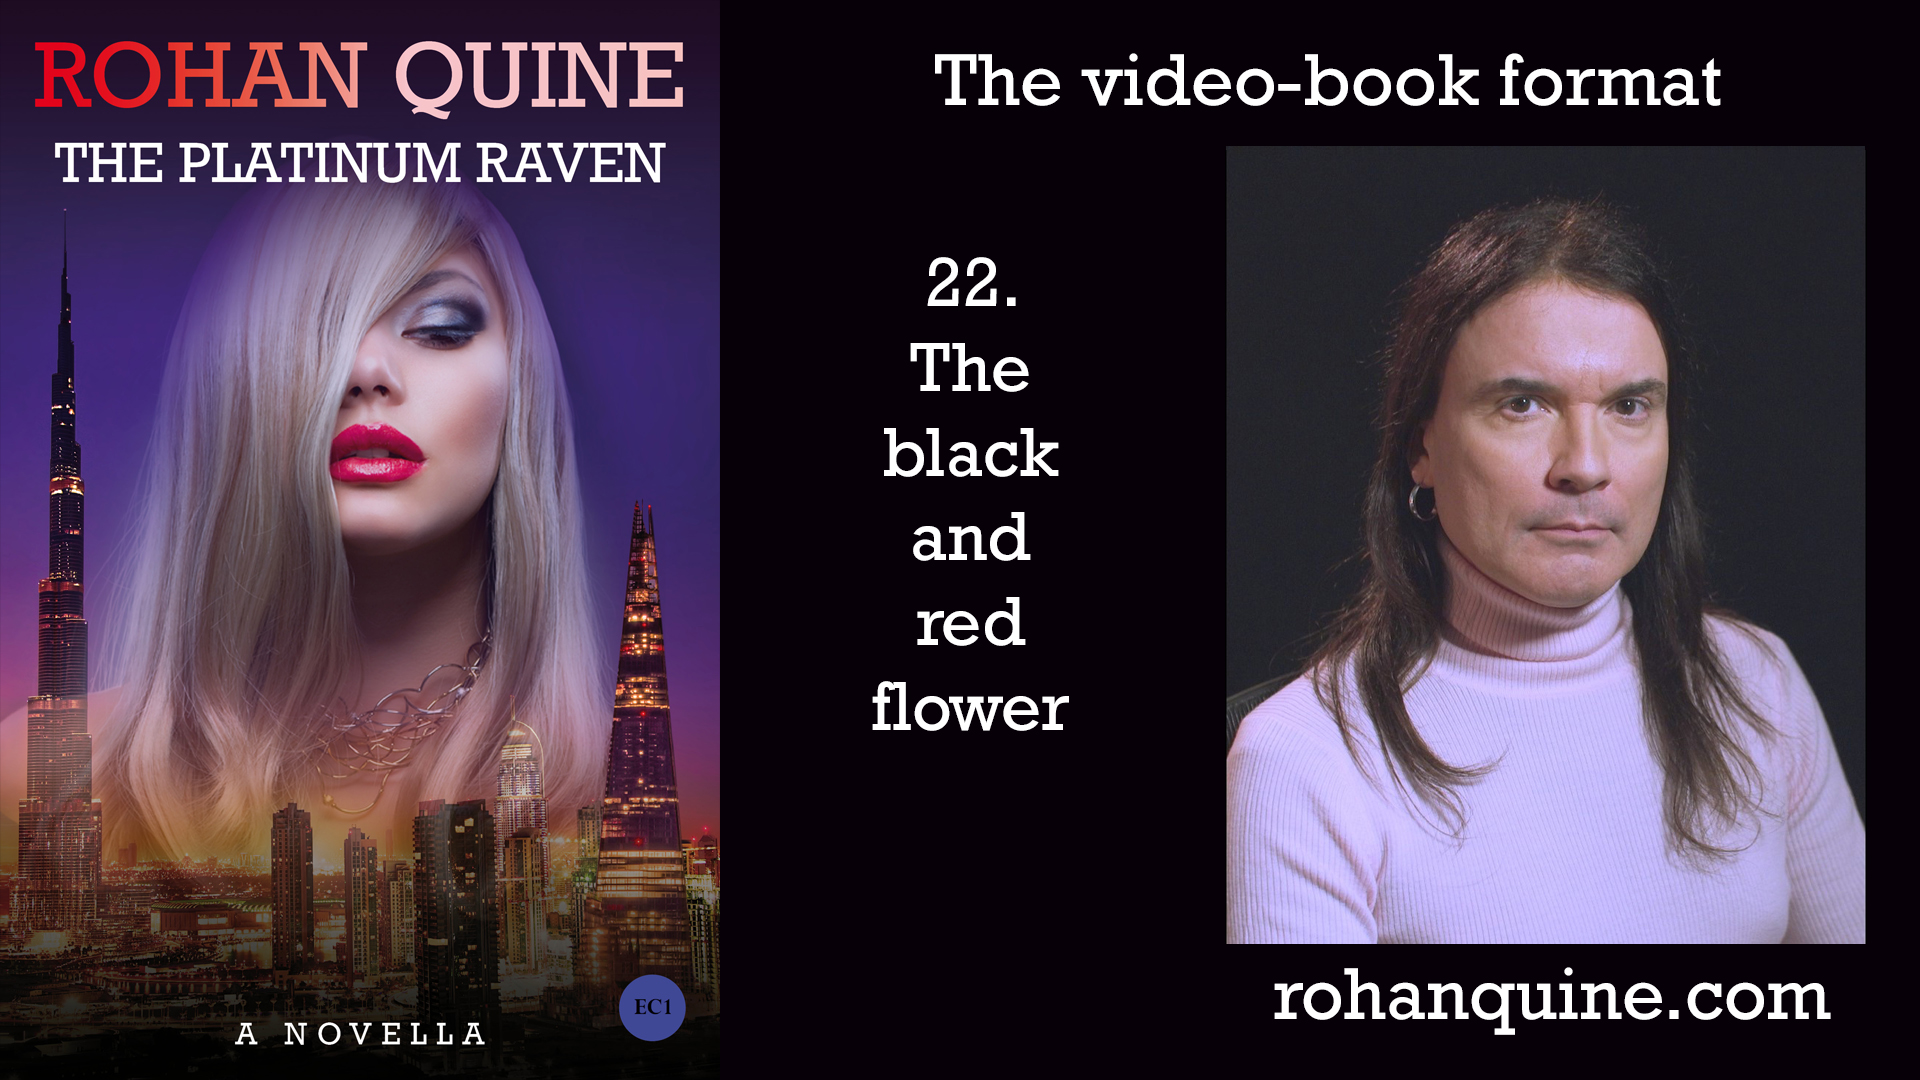 THE PLATINUM RAVEN by Rohan Quine - video-book format - chapter 22